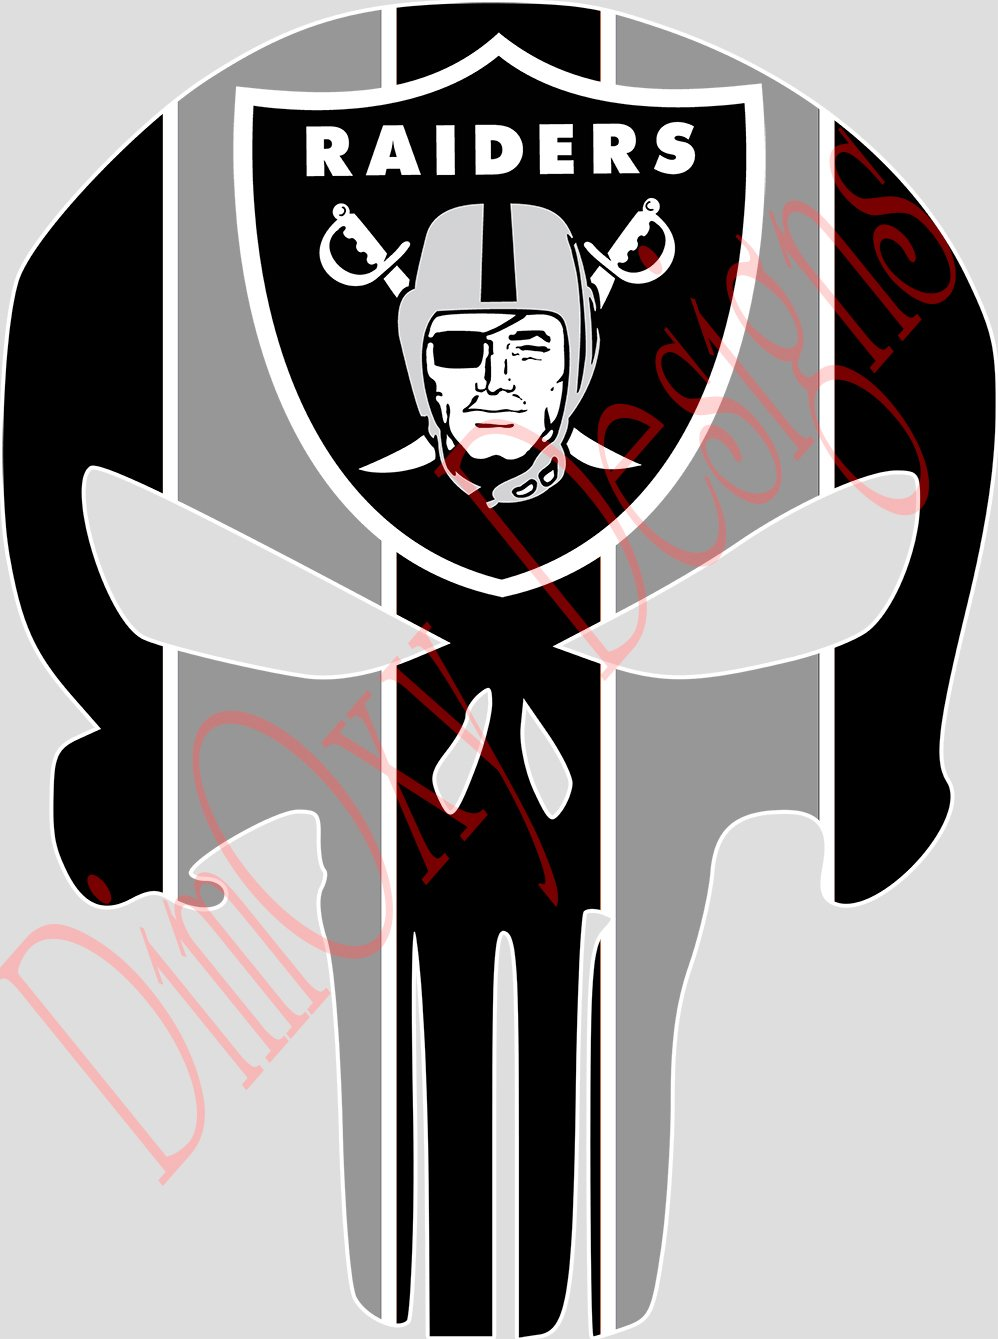 Raiders Punisher (Skull) Full Color Sport Fan Vinyl Decal/Sticker. (SB1) Outdoor Rated for up to 7 Years. Scratch Resistant, UV Resistant. Sized for iPhone, Tablet, etc. 3'' Tall.